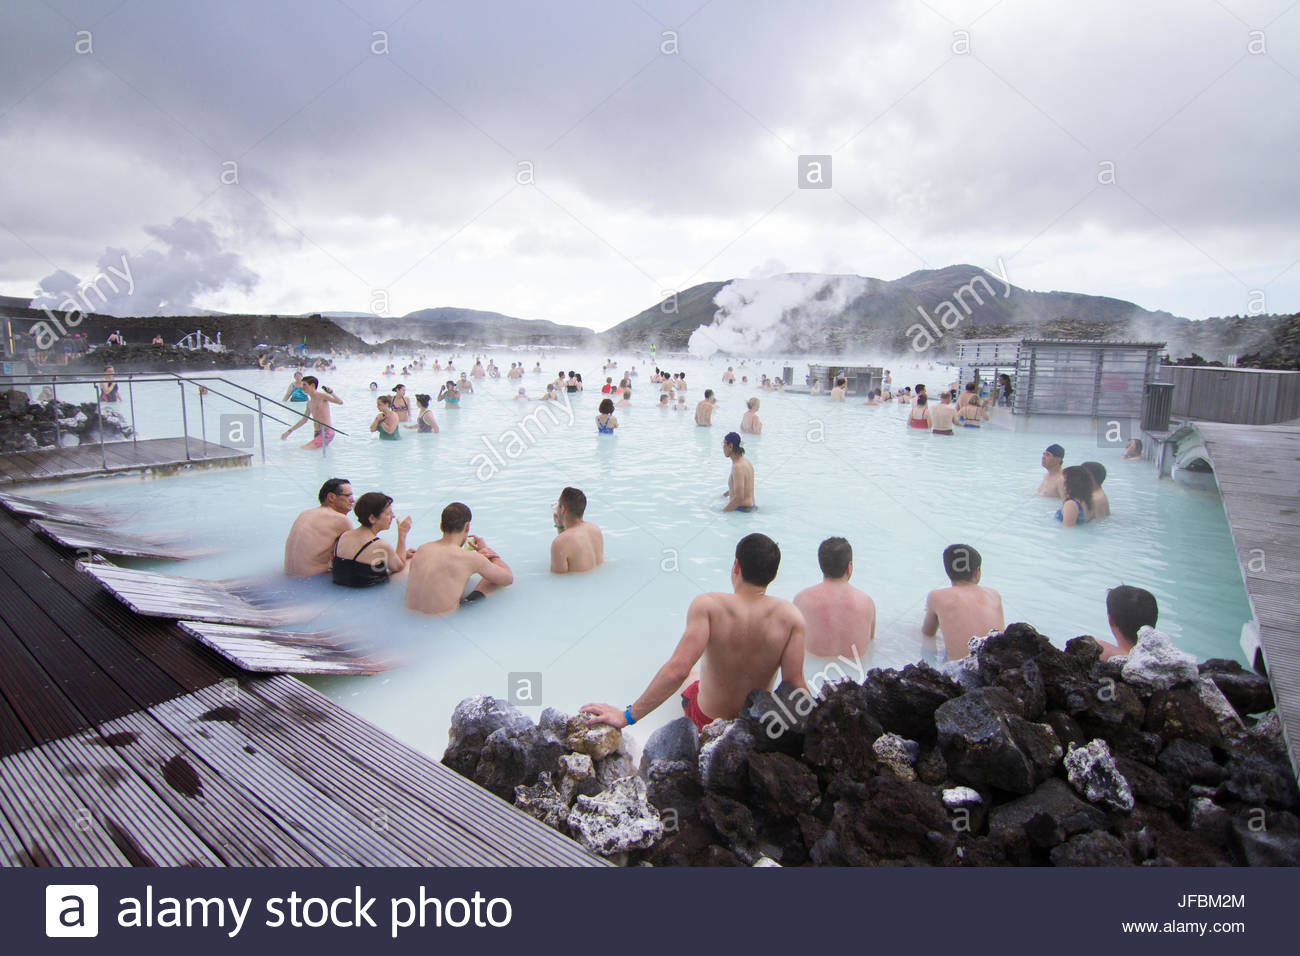 People relaxing in the geothermal hot springs at Blue Lagoon. - Stock Image